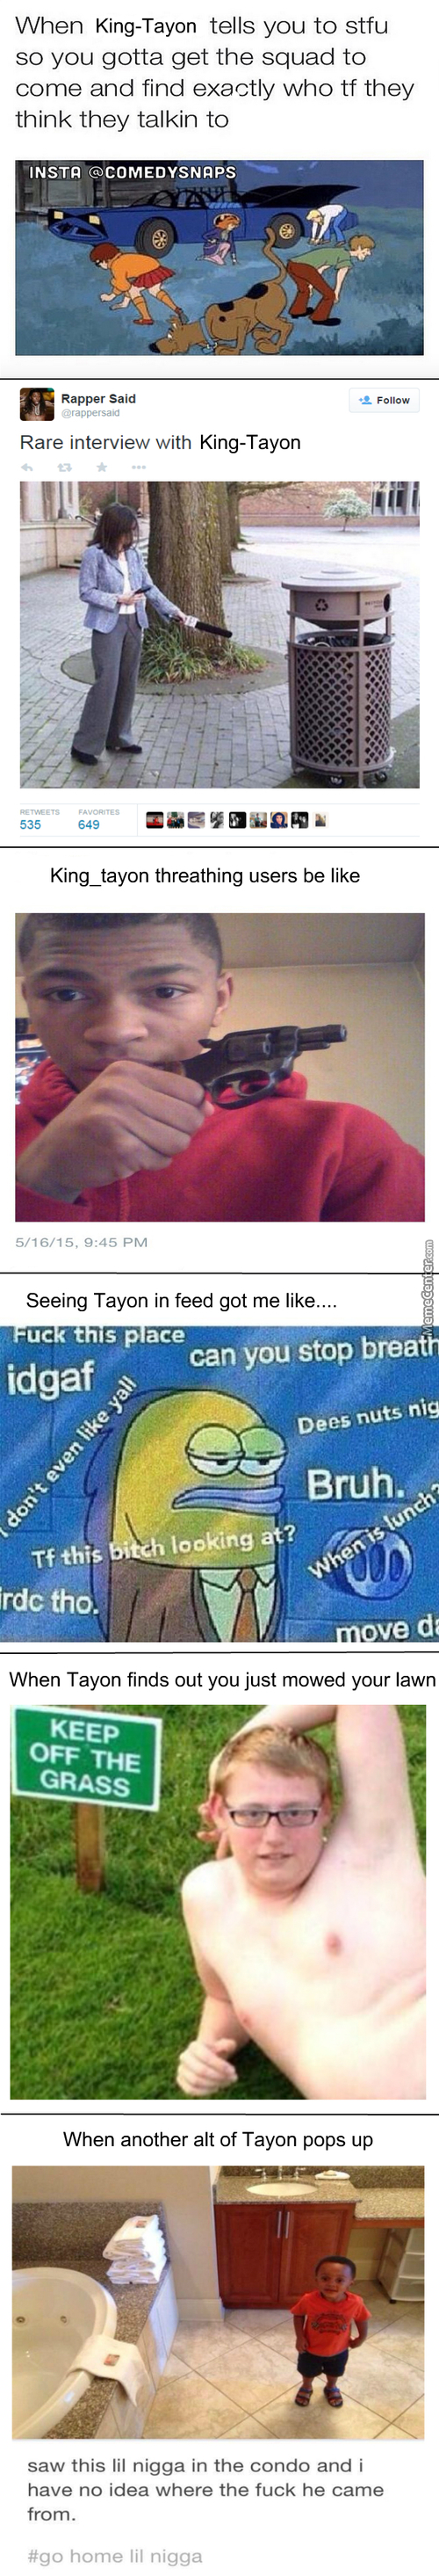 I Guess This Counts As Another Mc Tweet Compilation: Peasant_Tayon Edition